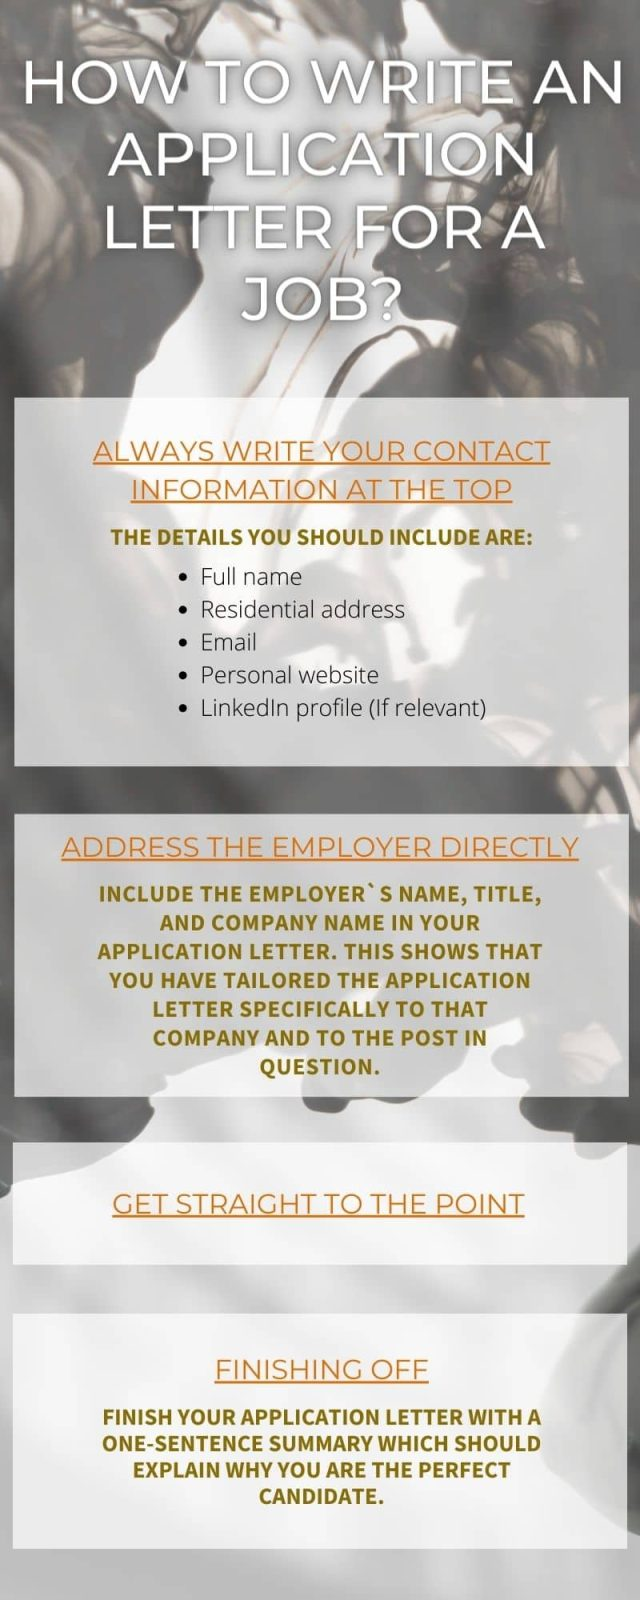 How to write an application letter for a job? (30 guide) ▷ Legit.ng